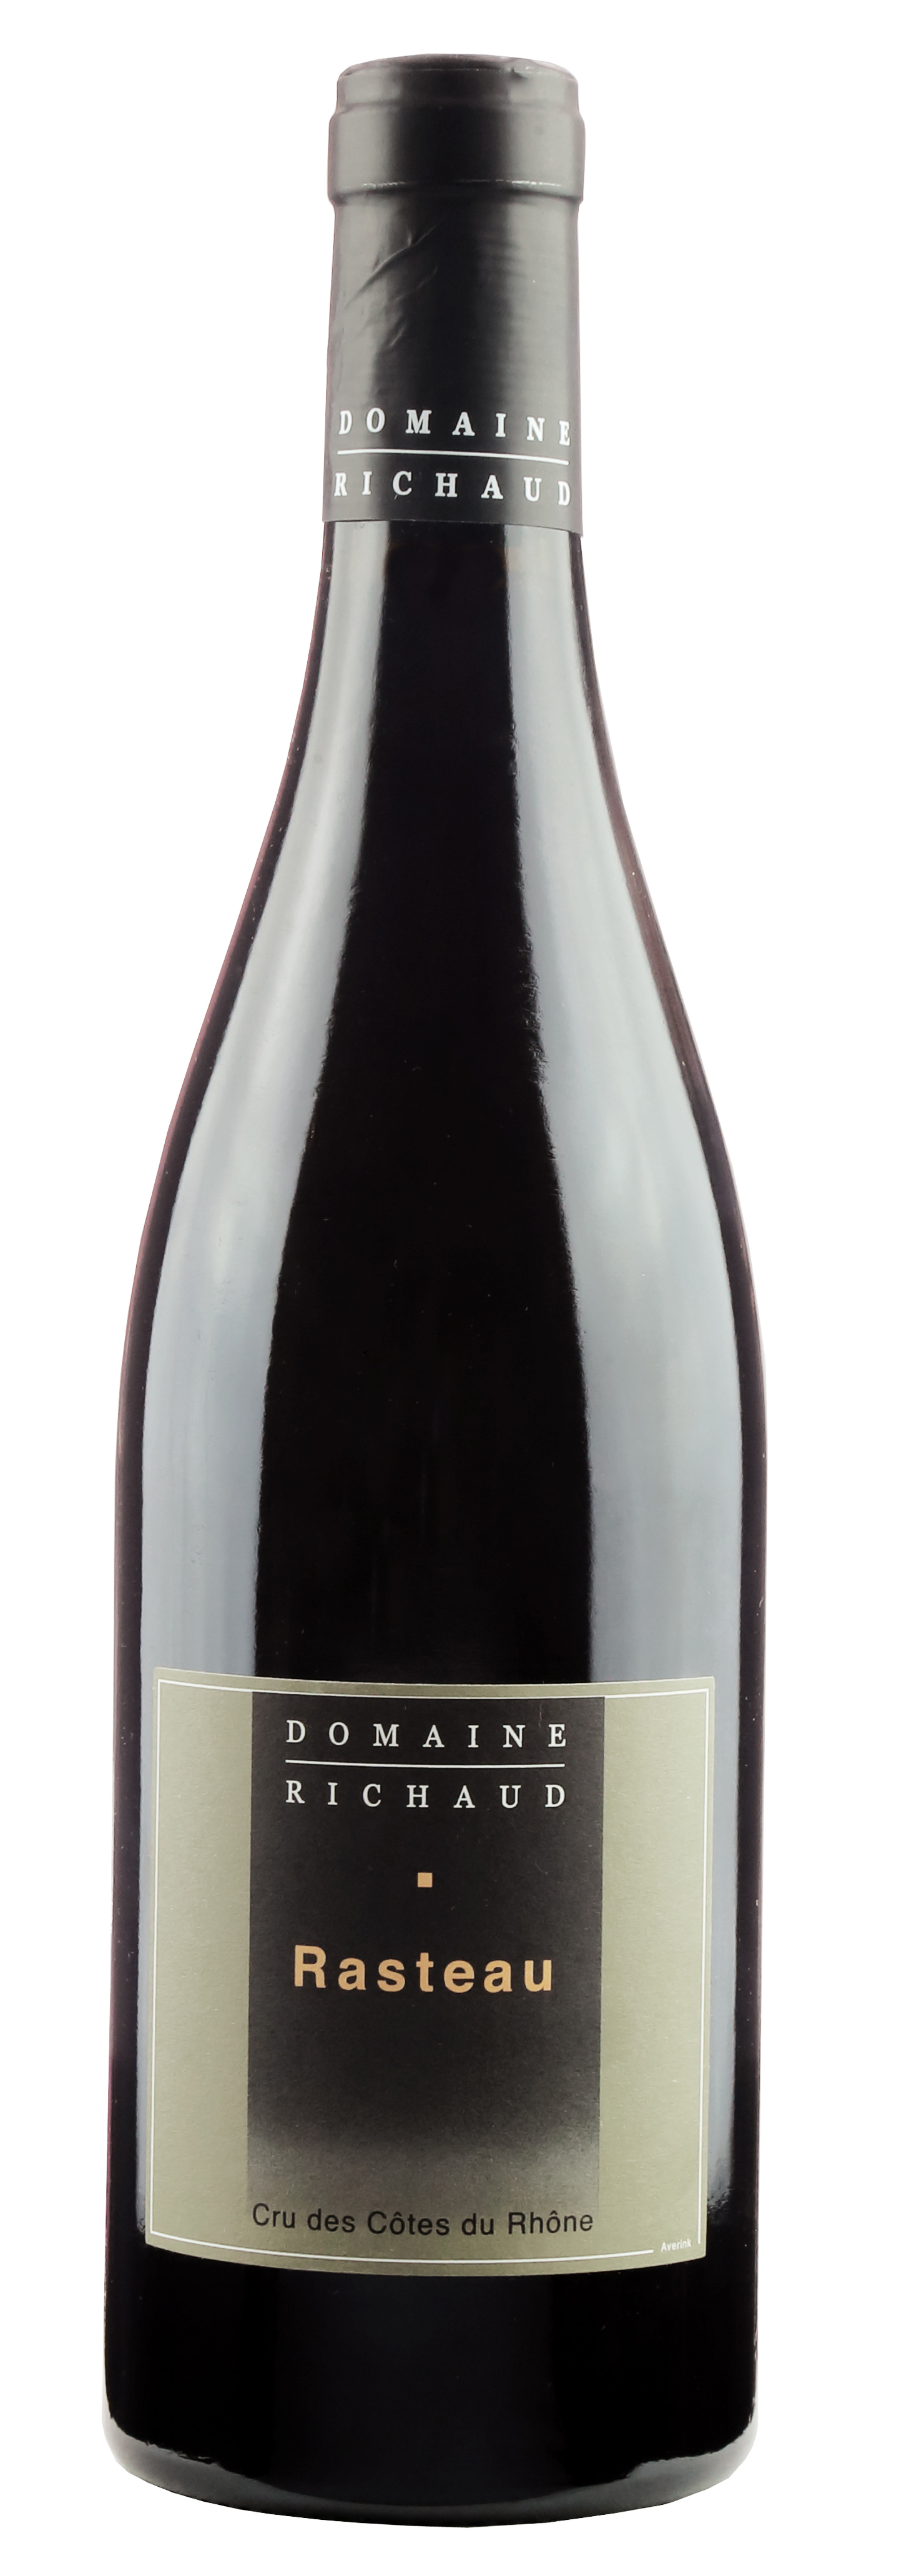 Domaine Richaud, Rasteau 2016